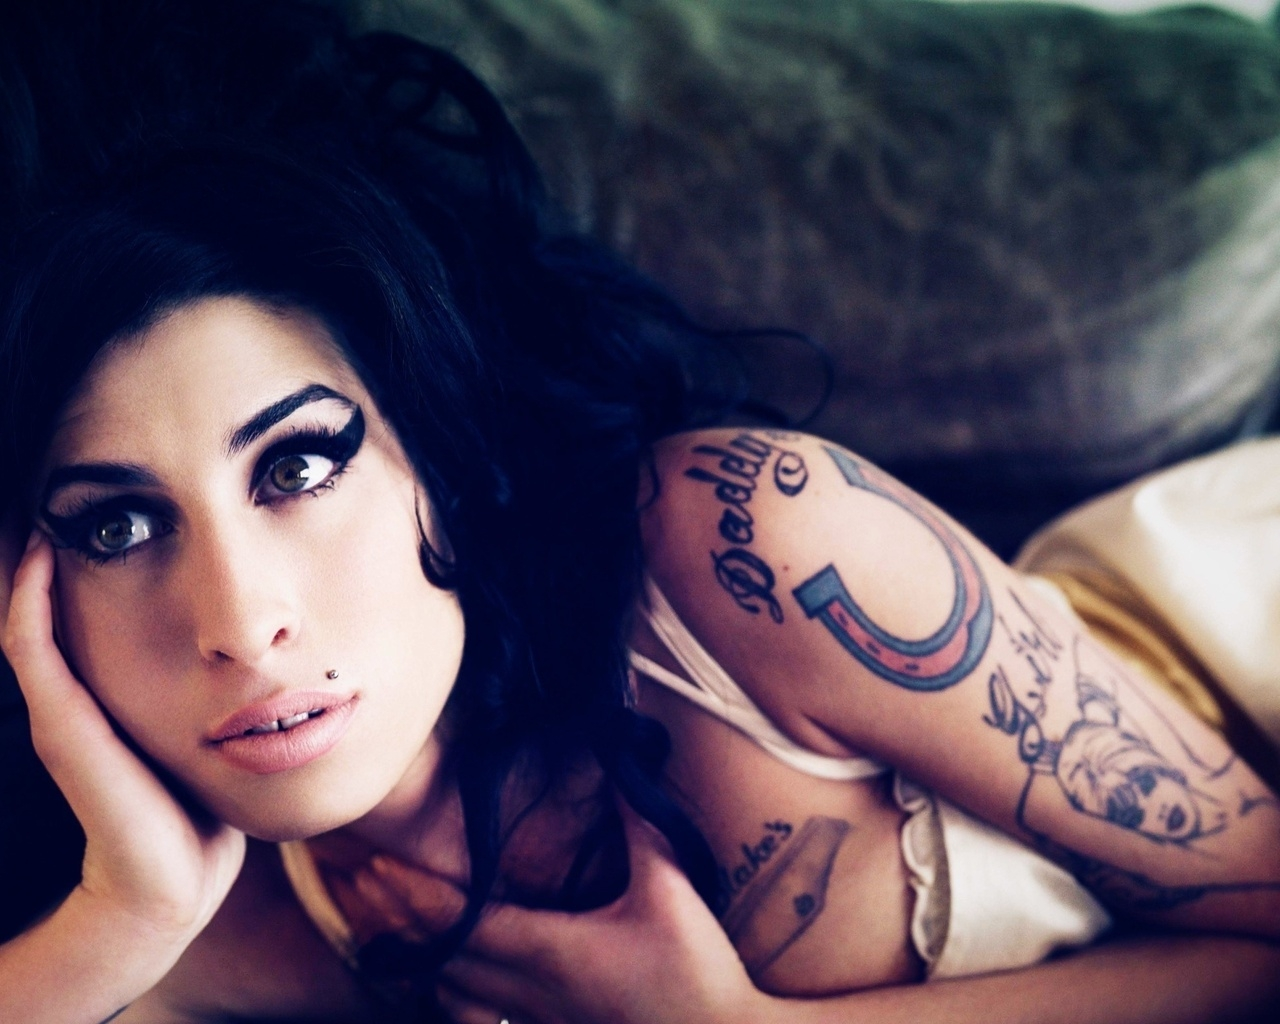 Beautiful Amy Winehouse for 1280 x 1024 resolution